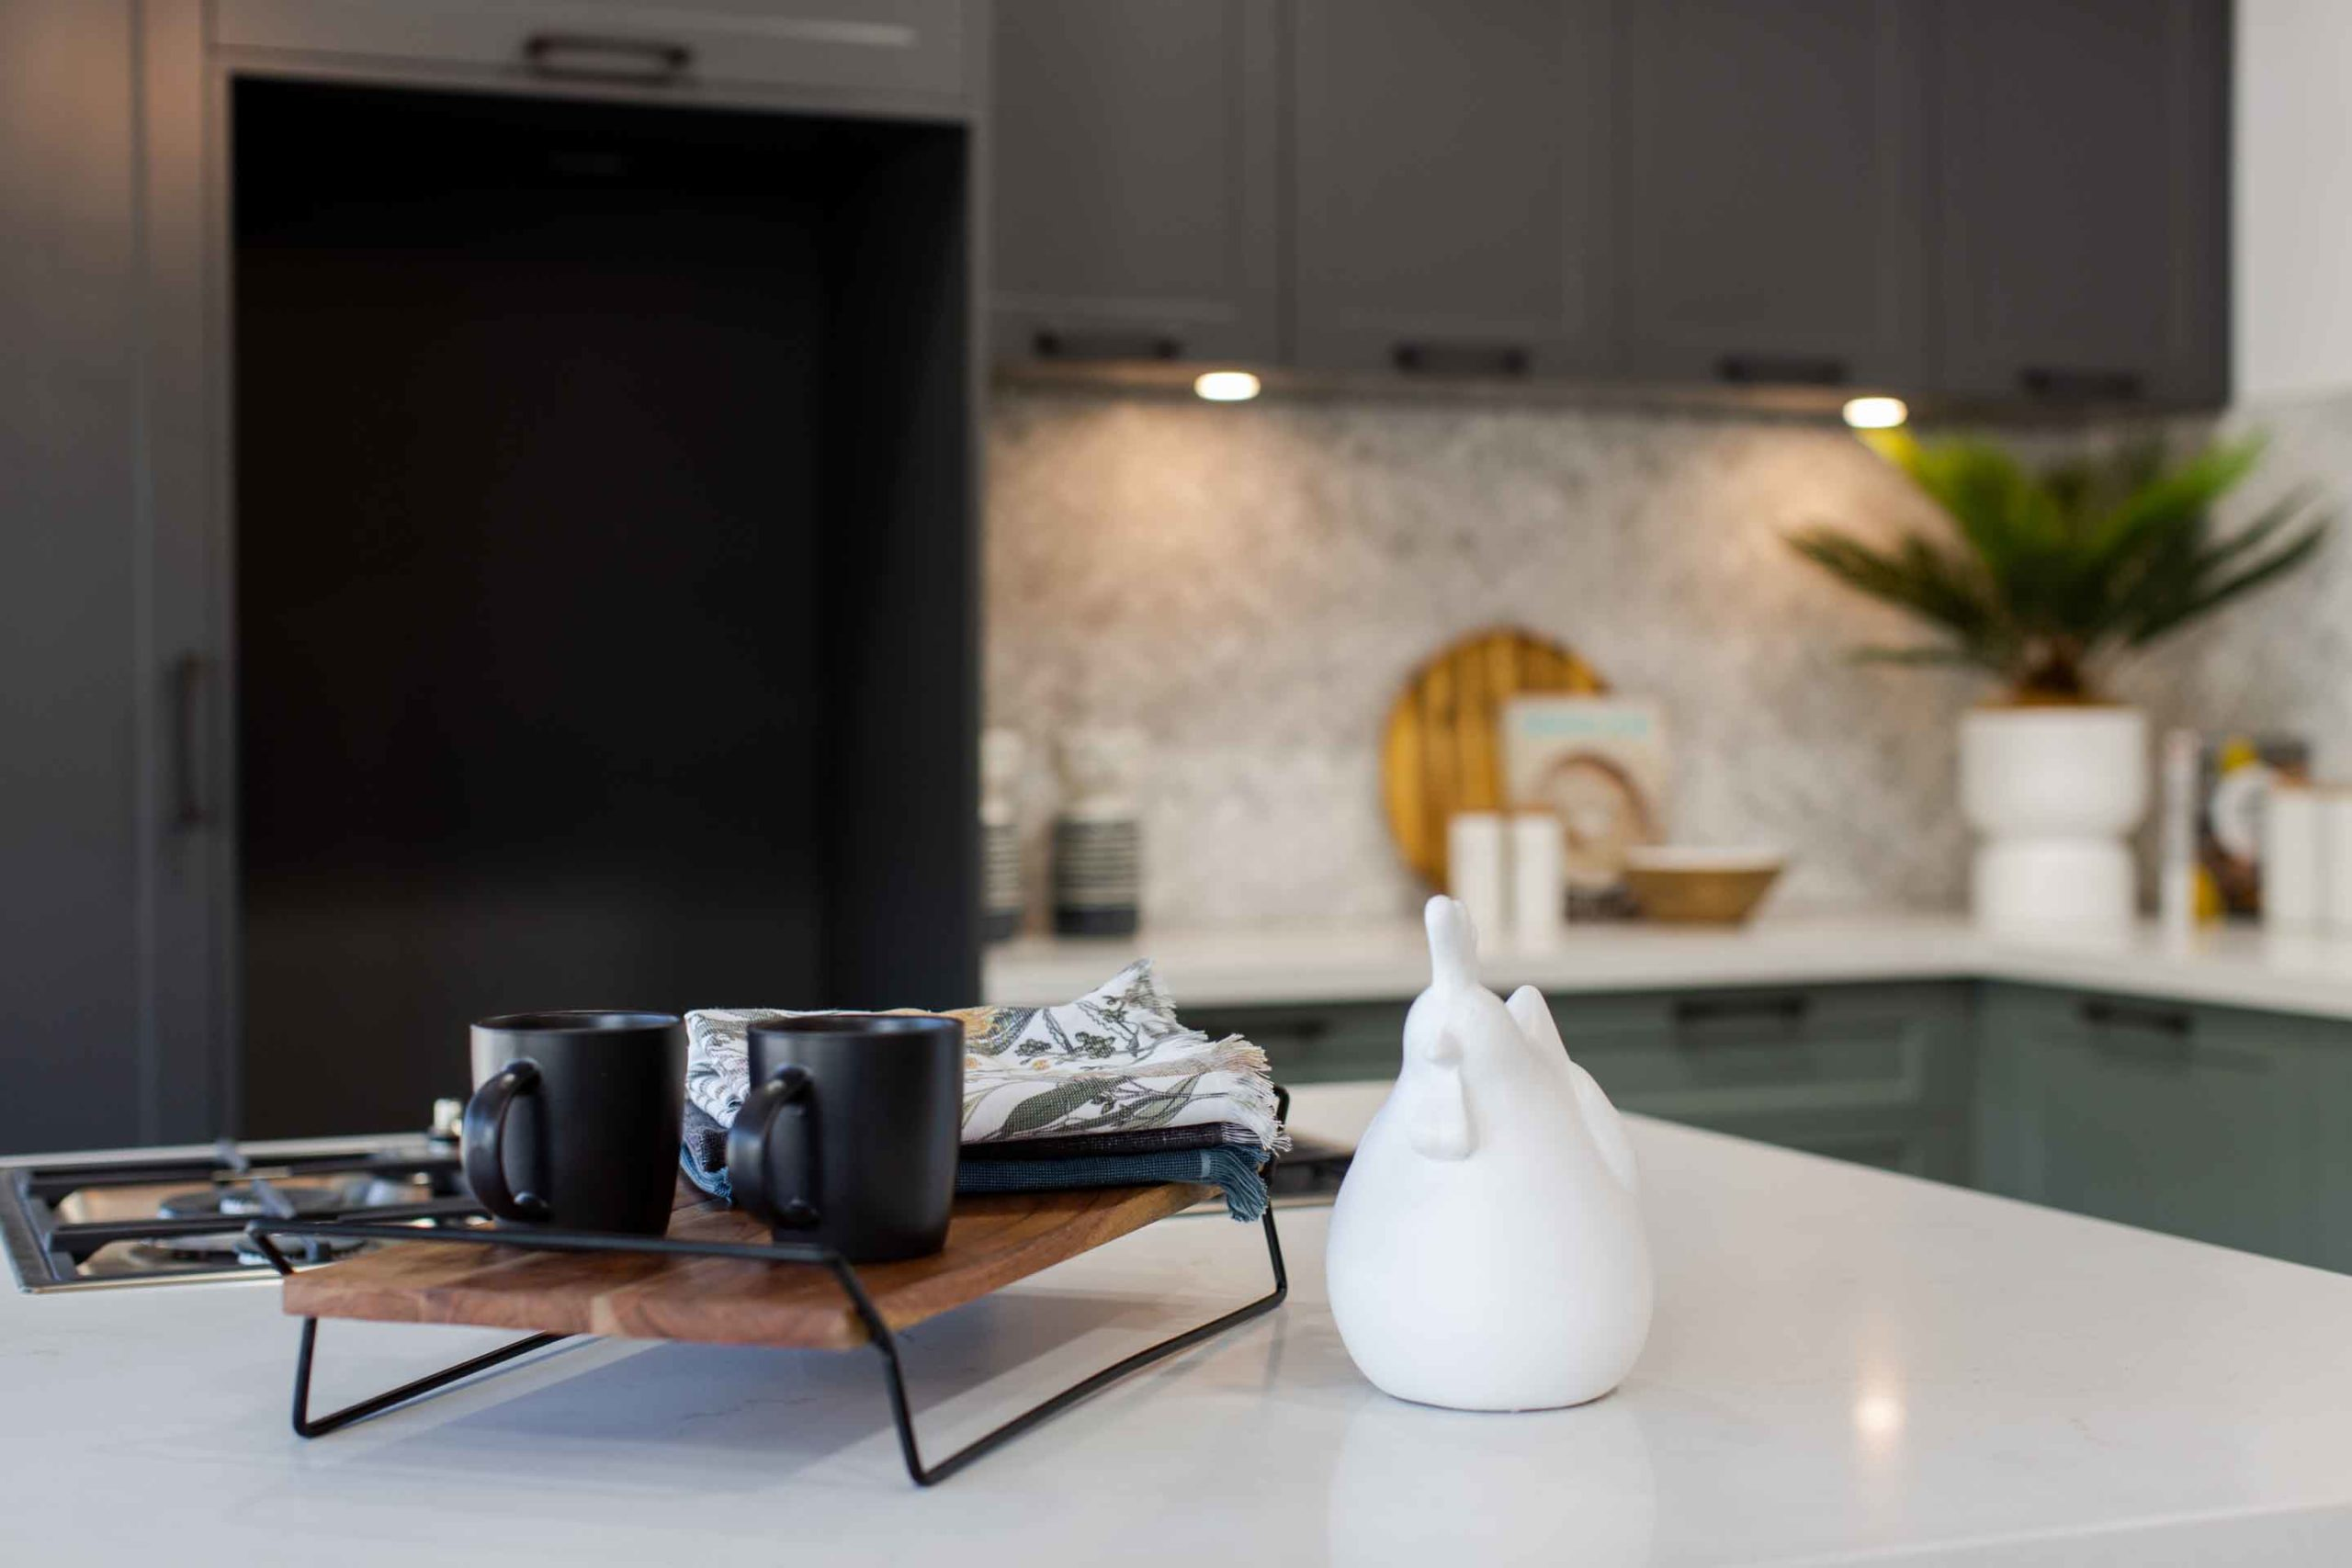 Leopard_Lens_Photography_Inarc_Design_Simson_Kitchen_Showroom-30